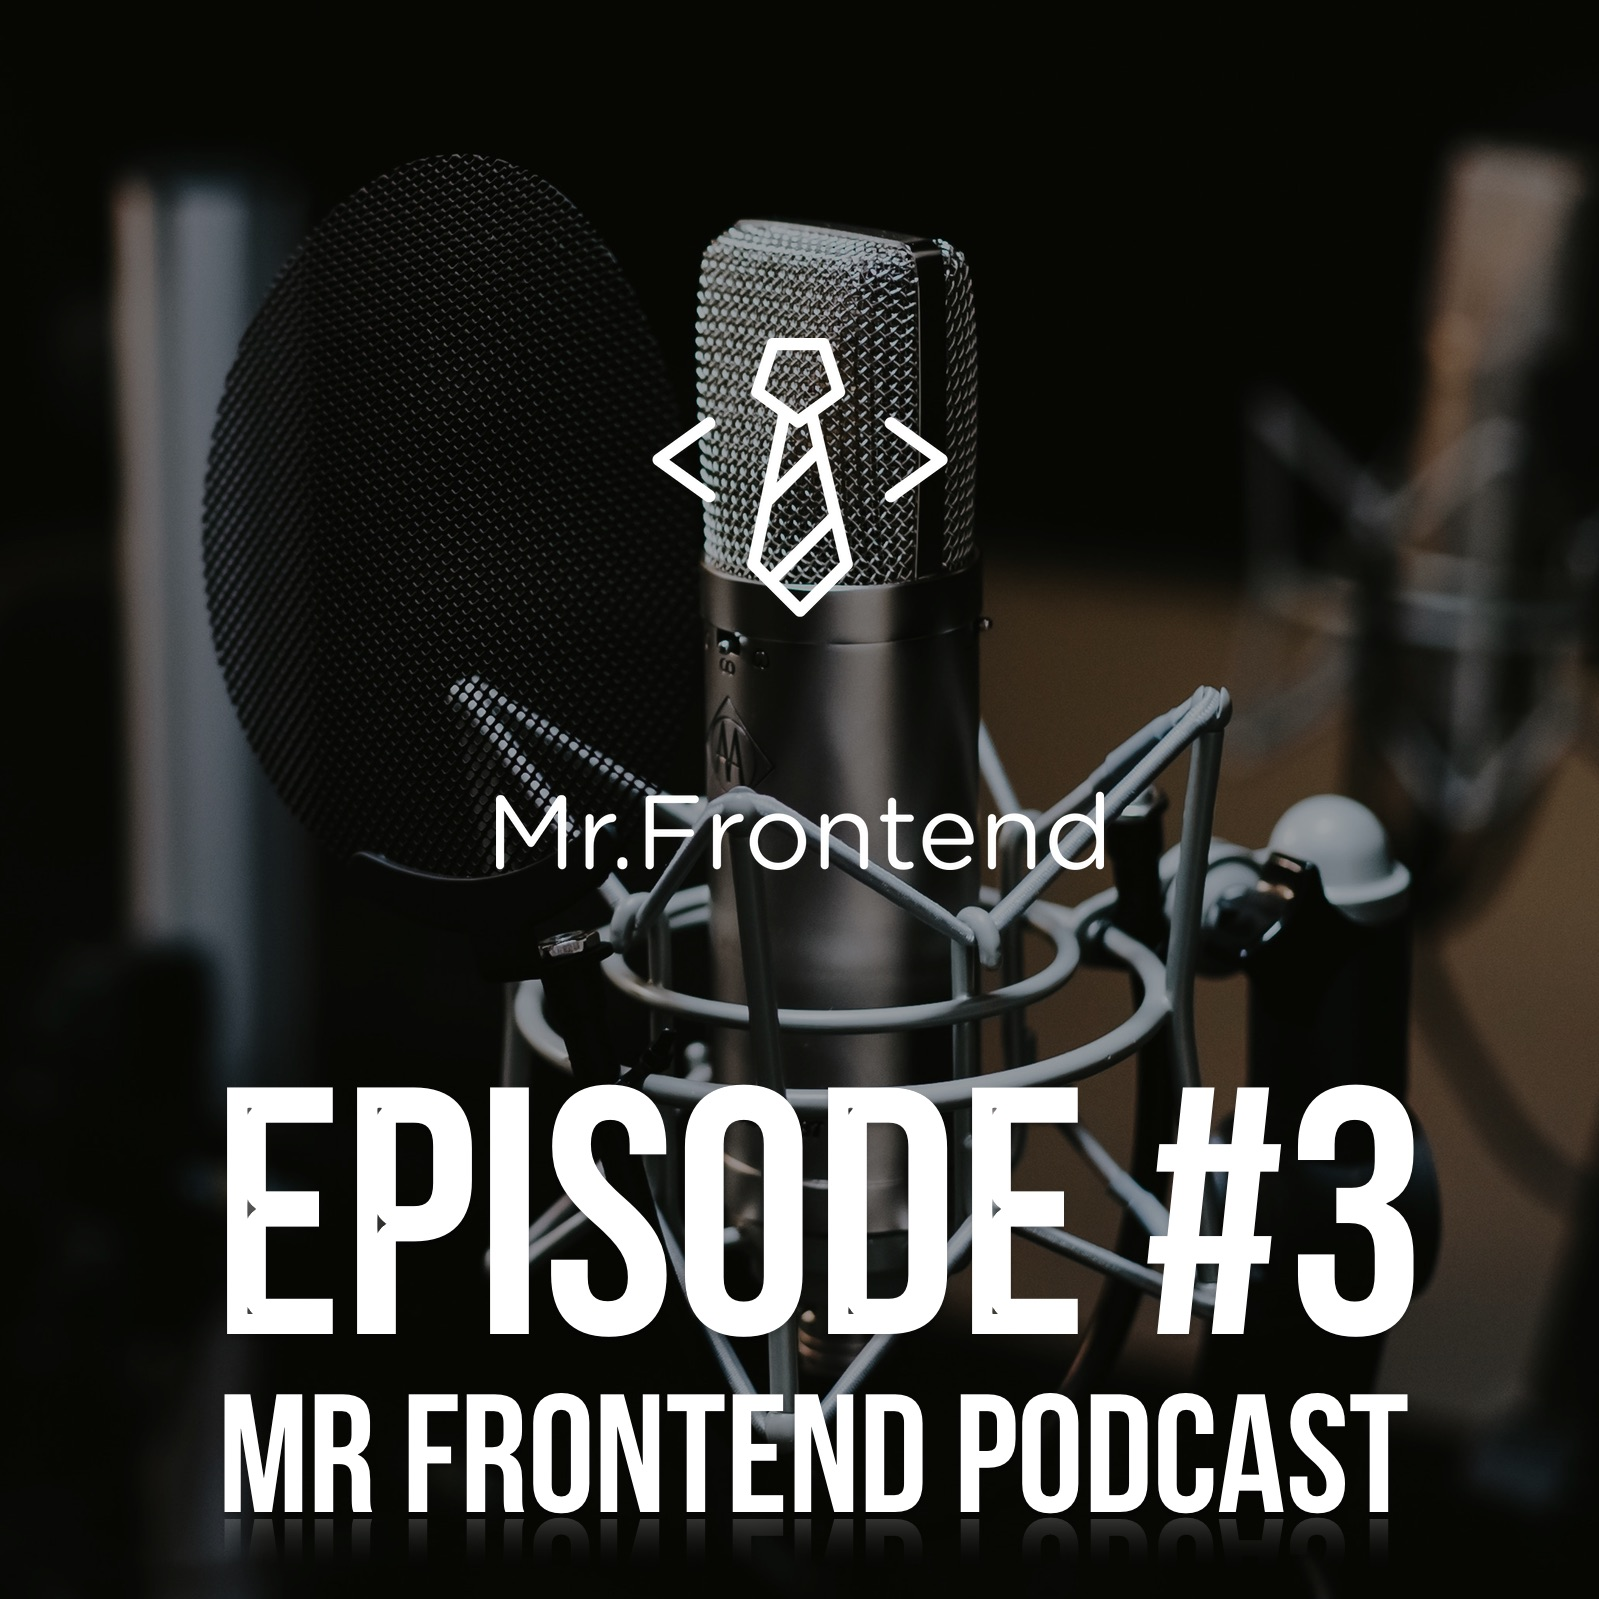 Mr Frontend Podcast Episode #3 - 5 tips for landing your first Junior Web Development job!